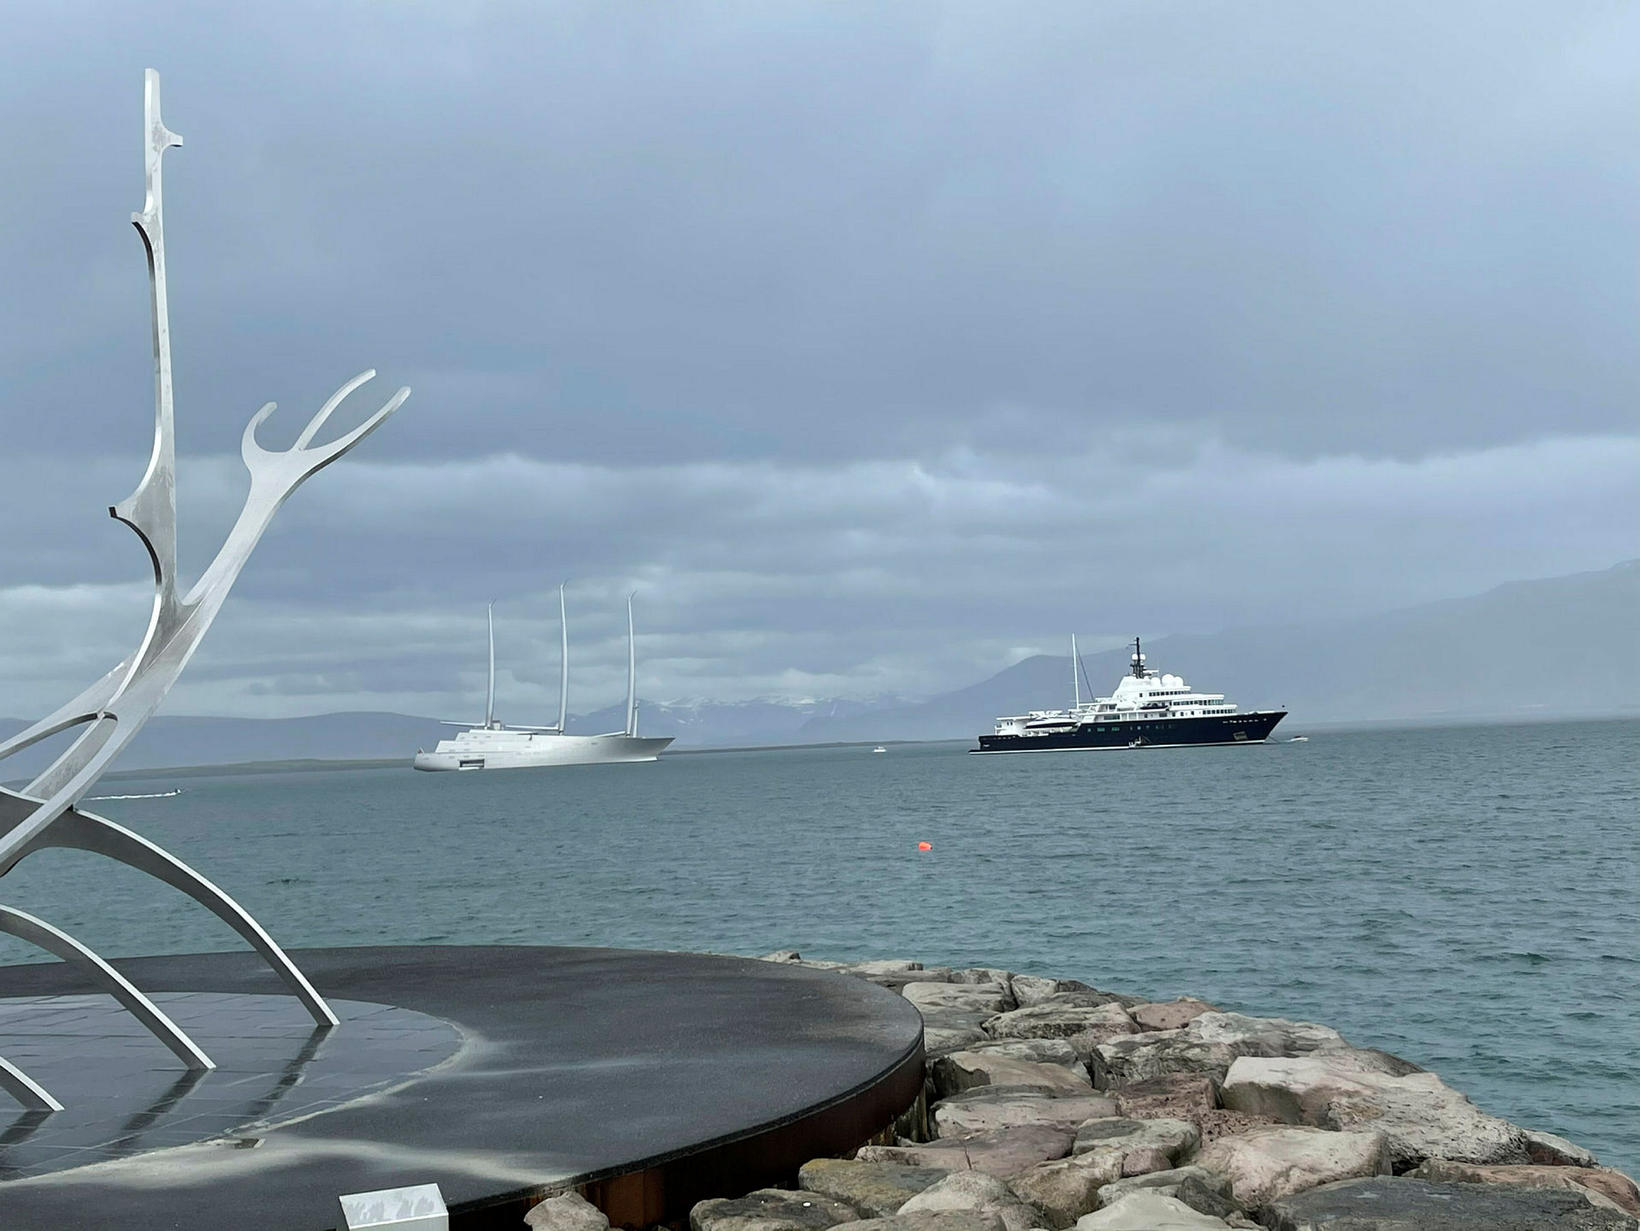 The superyachts, seen from the Sun Voyager last night.